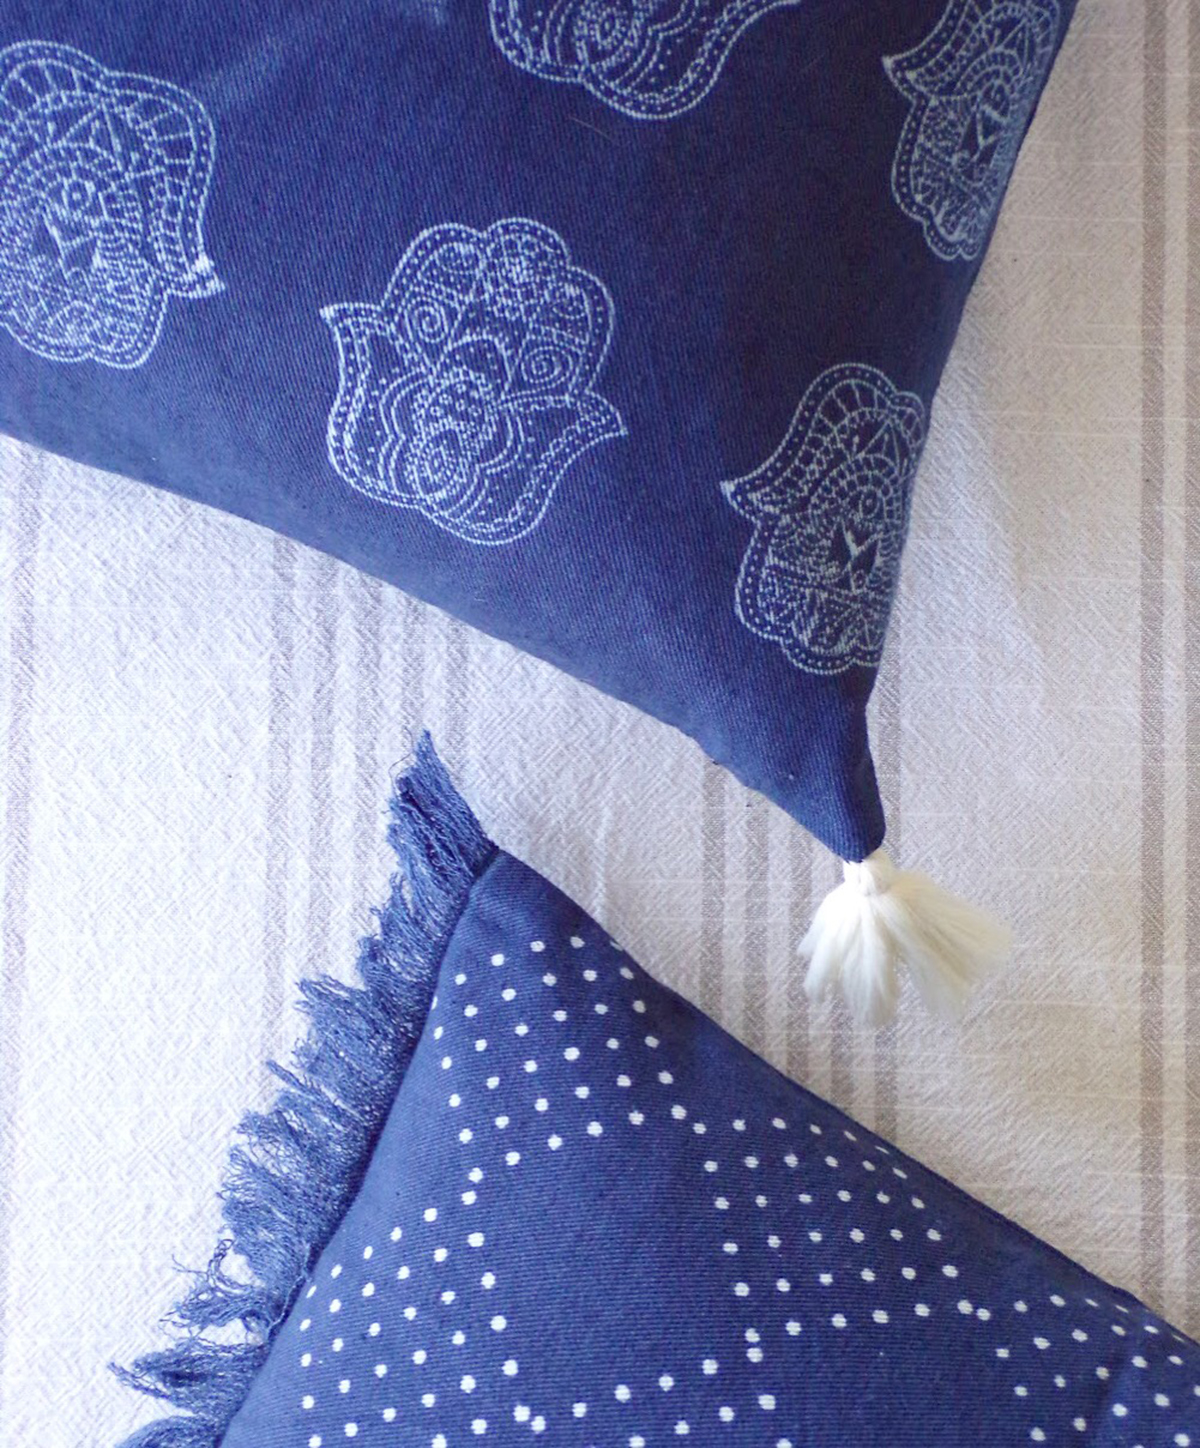 Close up of the detail of Chelsea's pillows